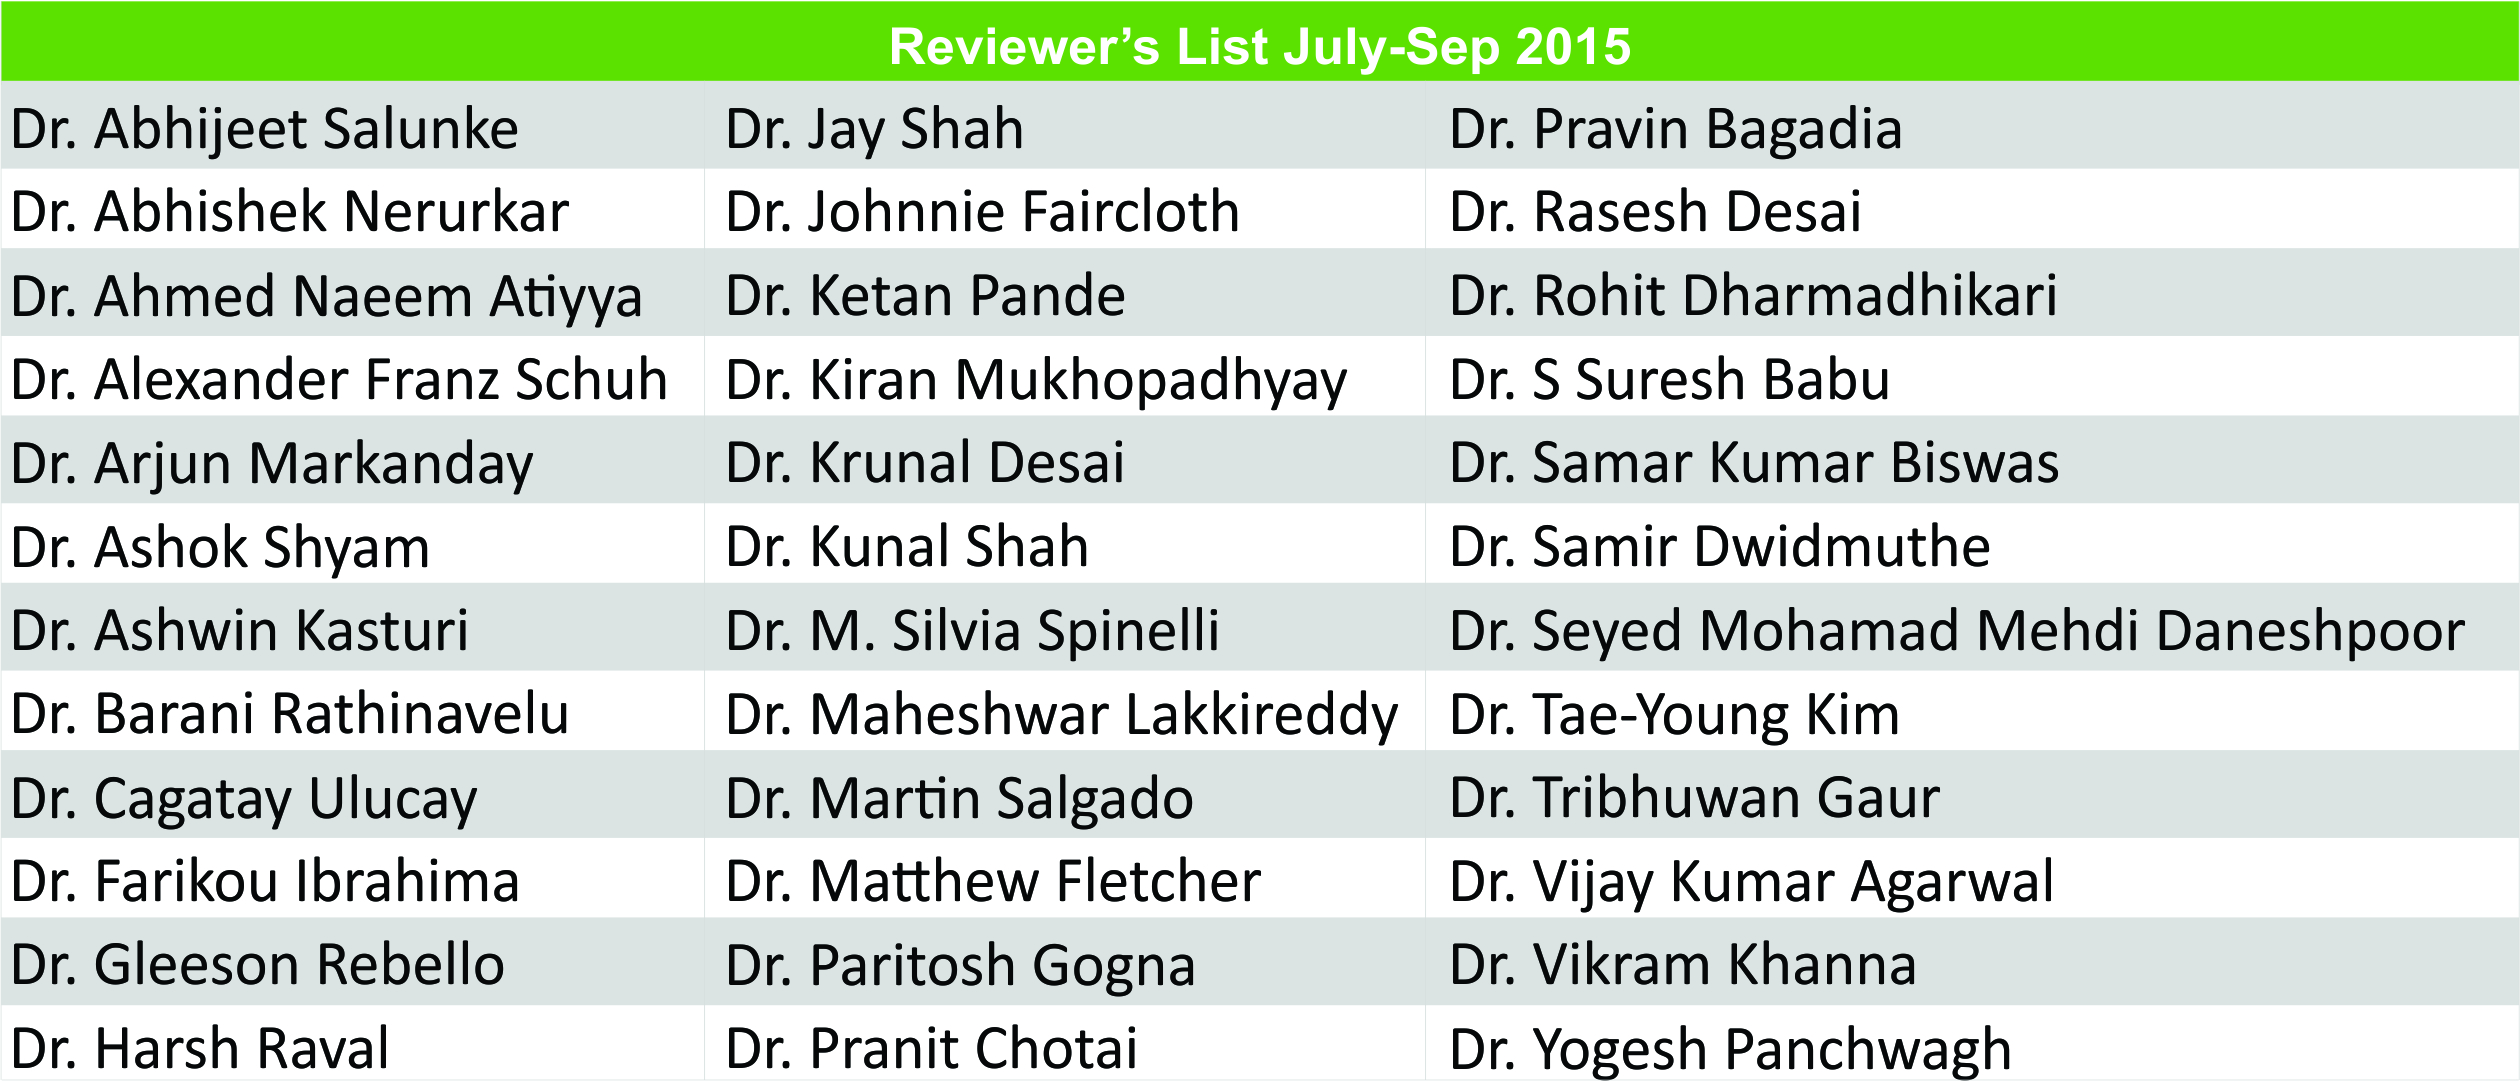 Reviewer's List Name